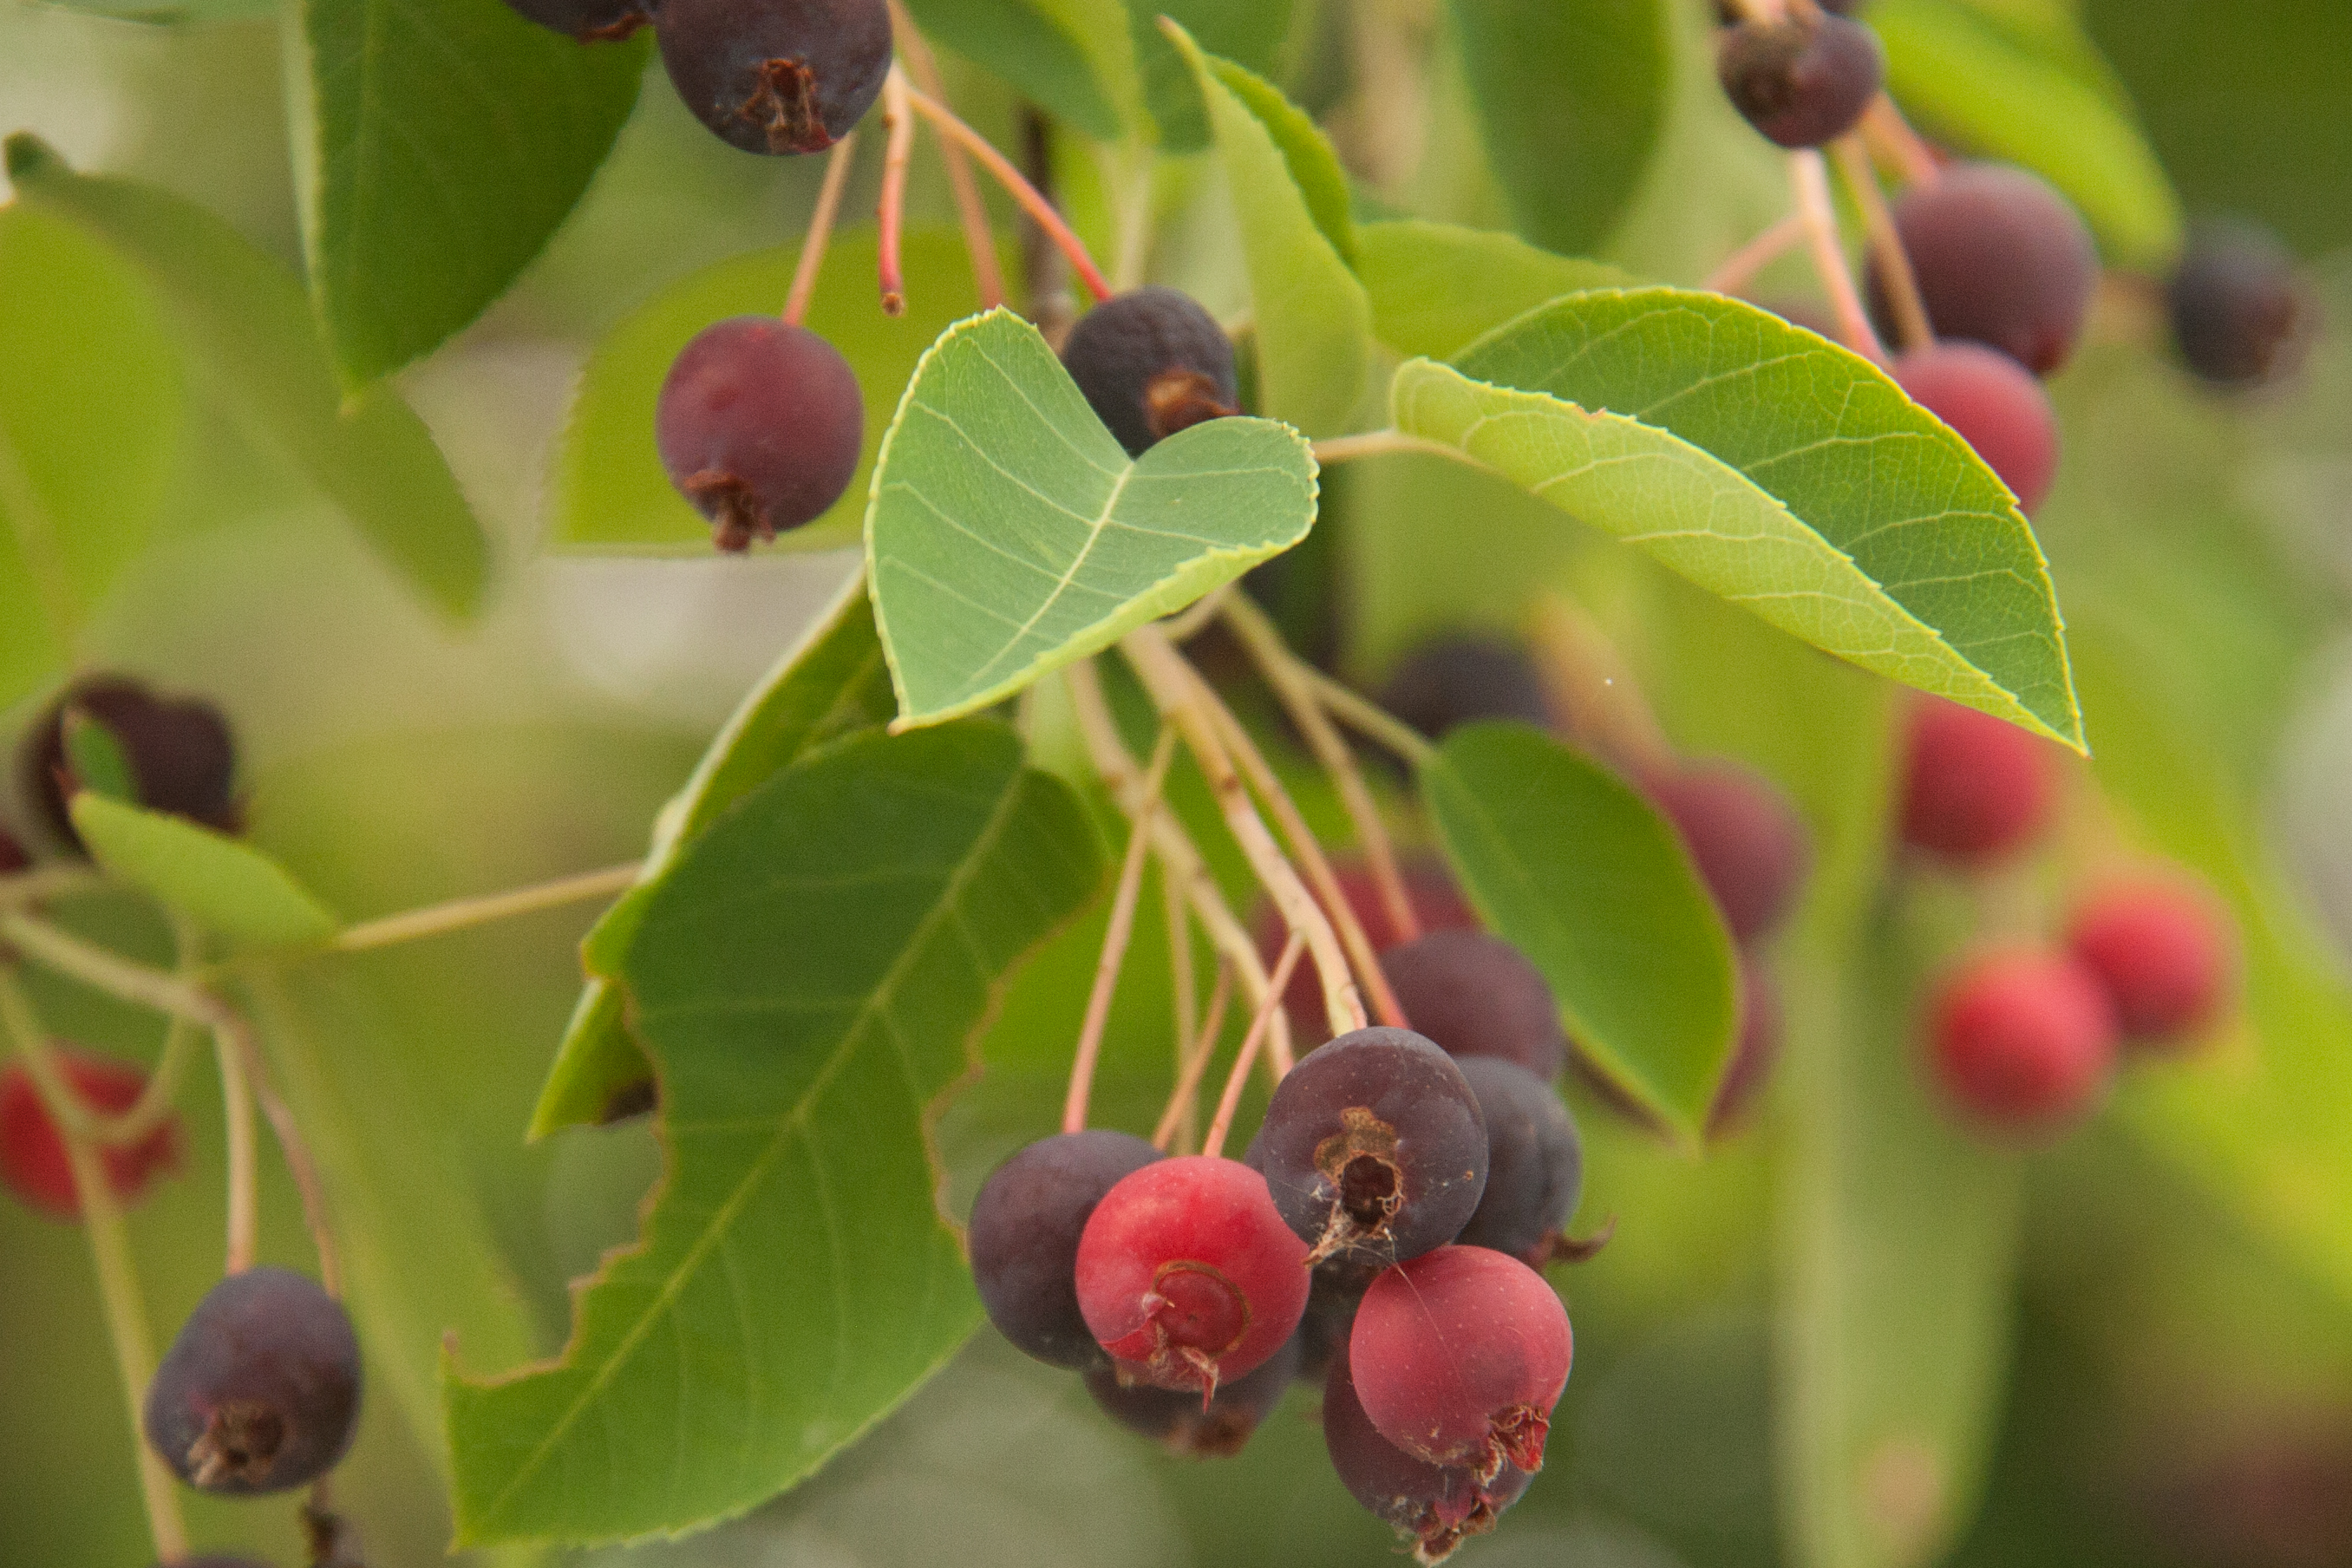 Serviceberry: The Most Delicious Fruit You Aren't Eating